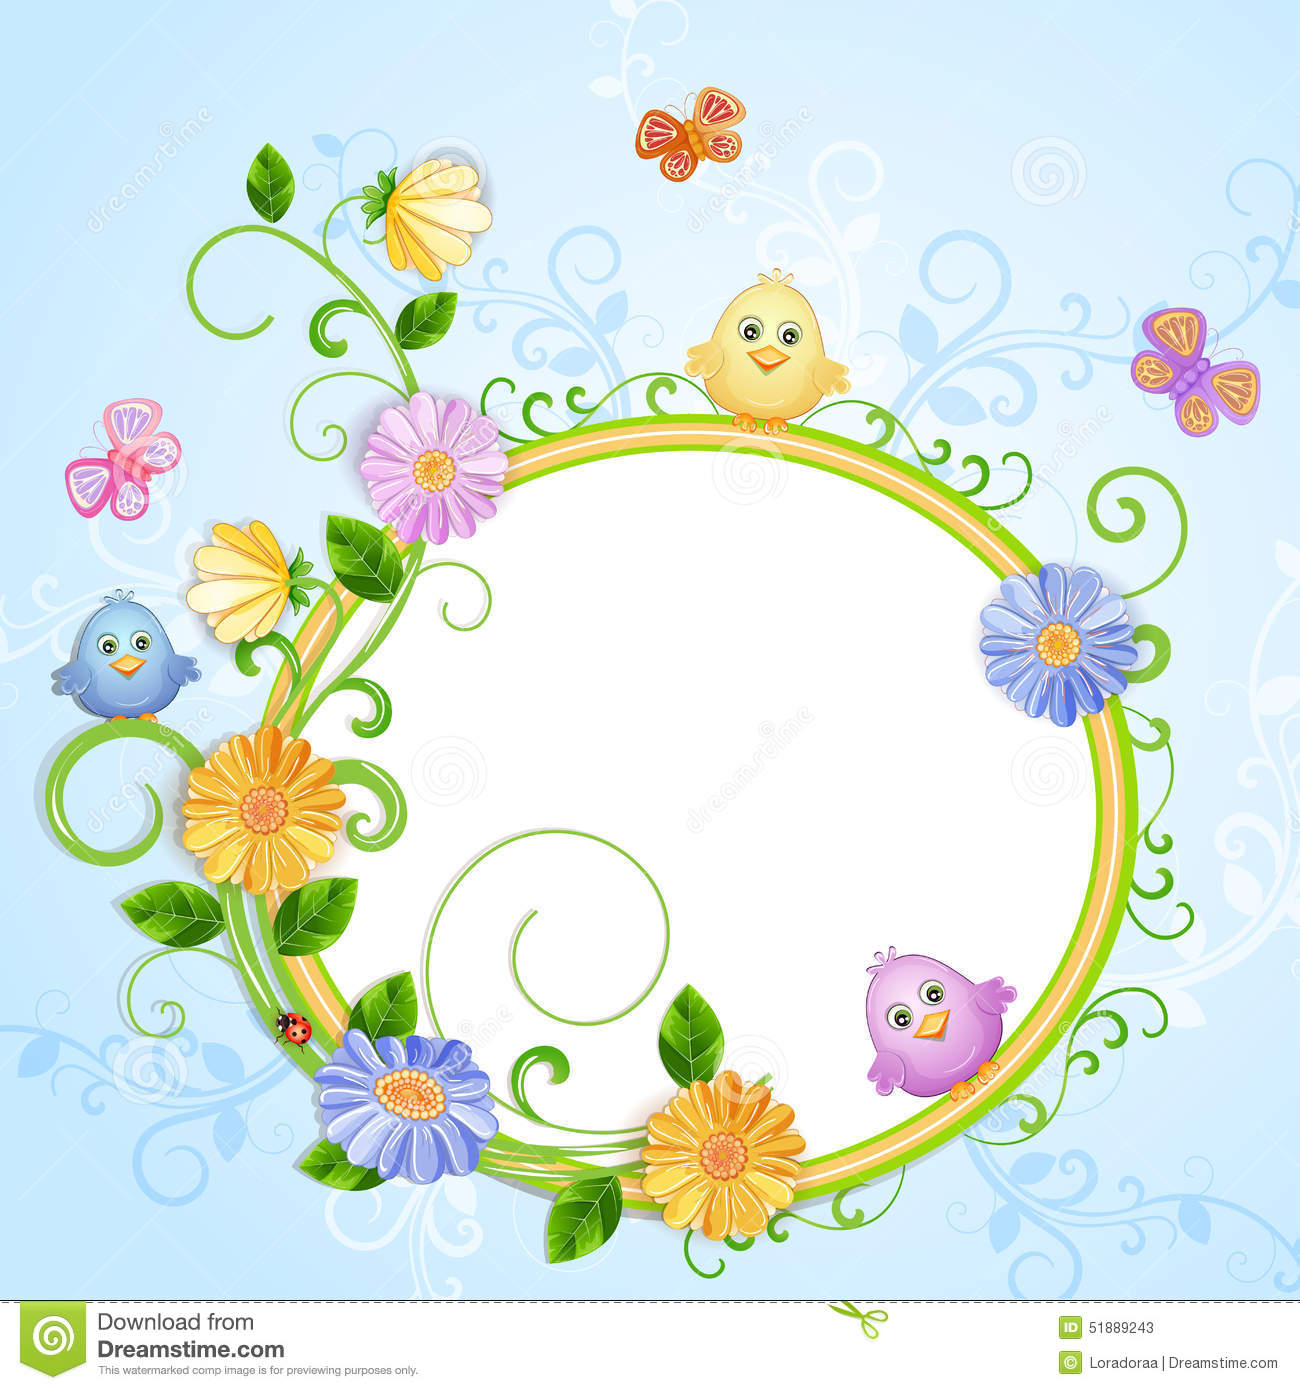 Beautiful Pictures Of Flowers And Butterflies Birds Spring Illustration With Beautiful Flowers Stock